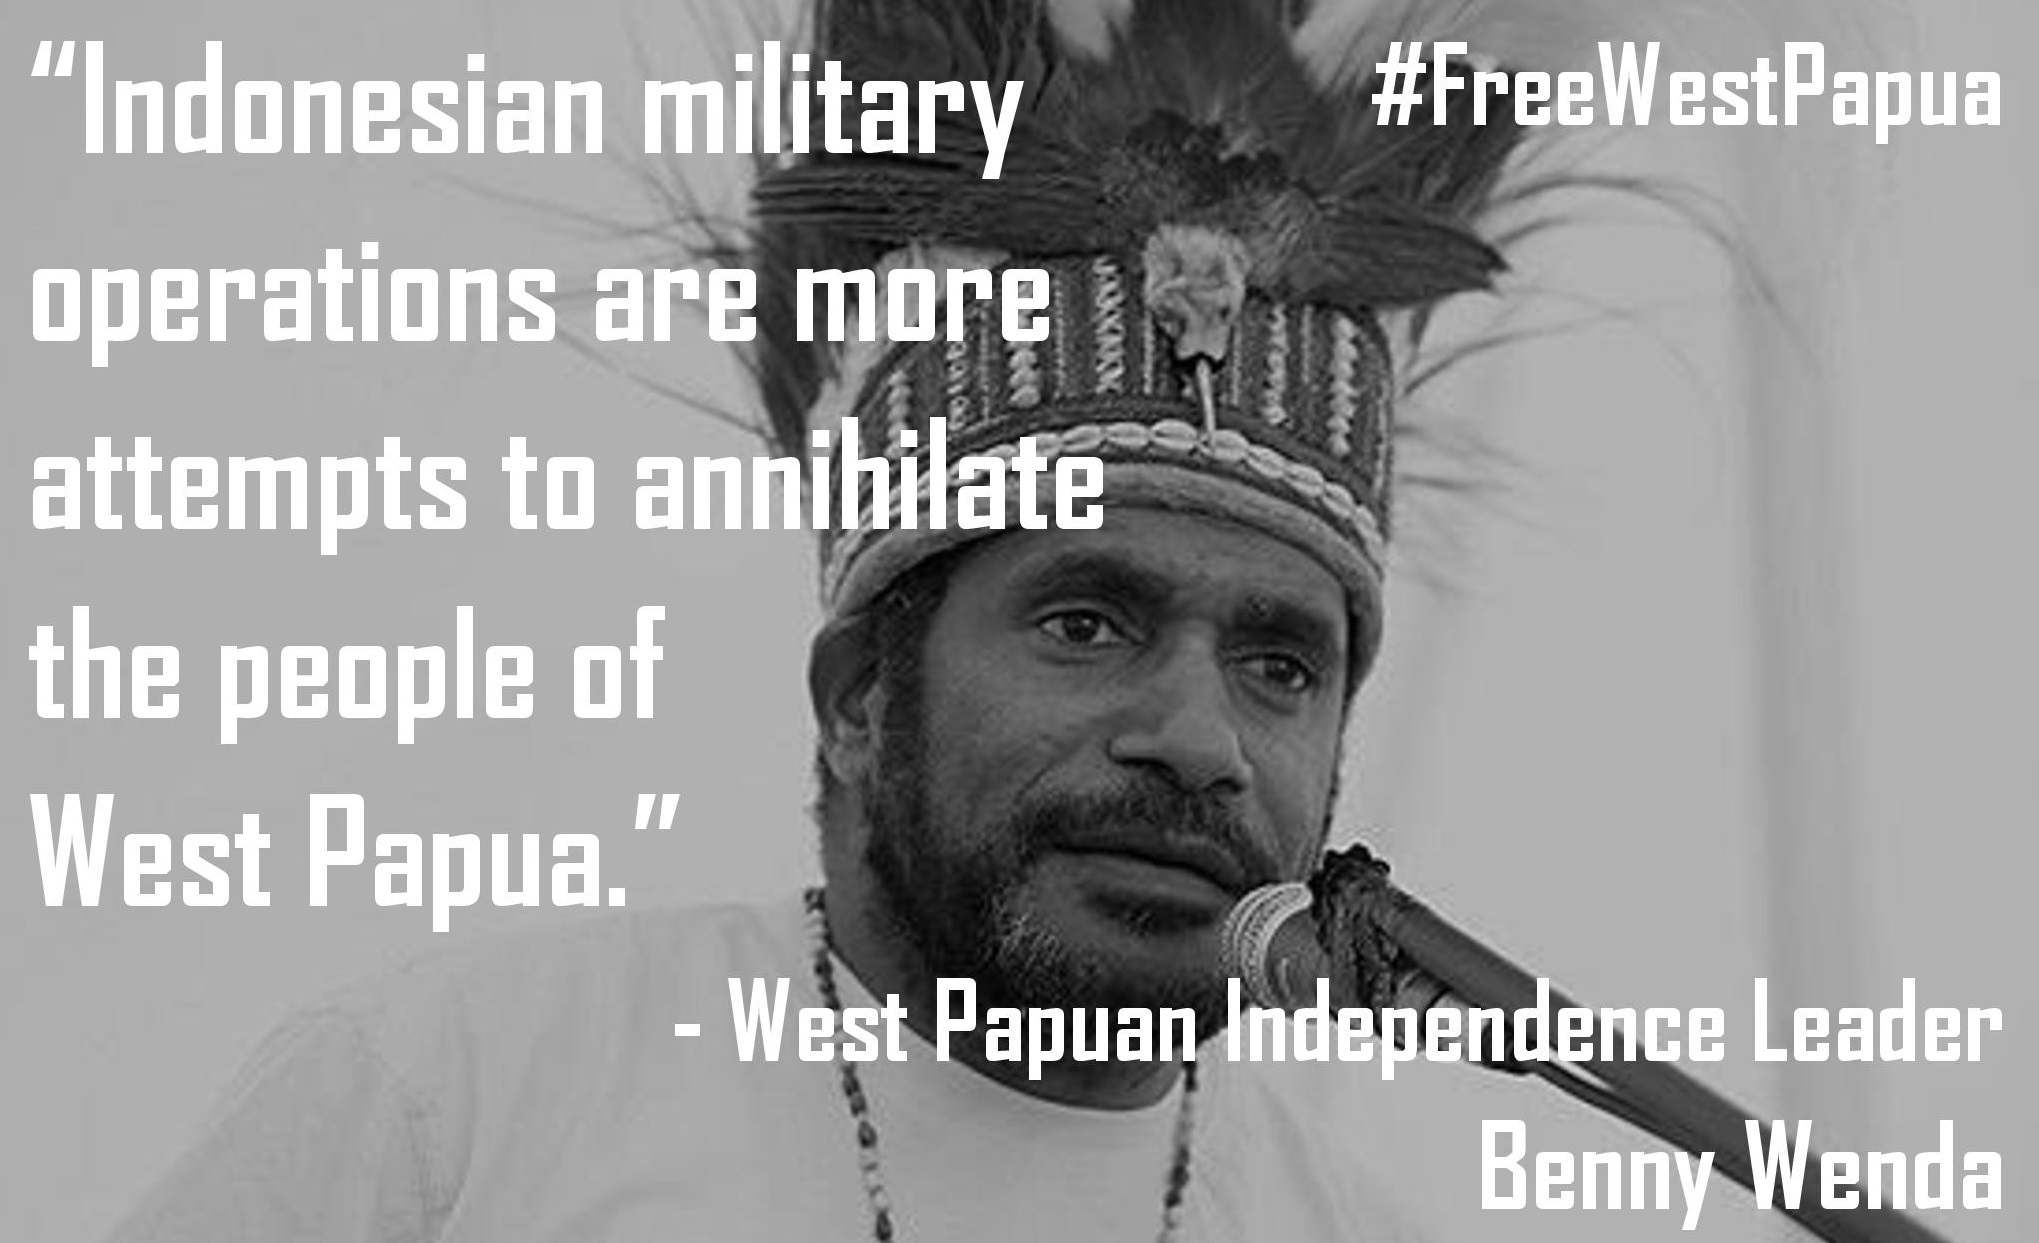 Indonesian military operations are more attempts to annihilate the people of West Papua